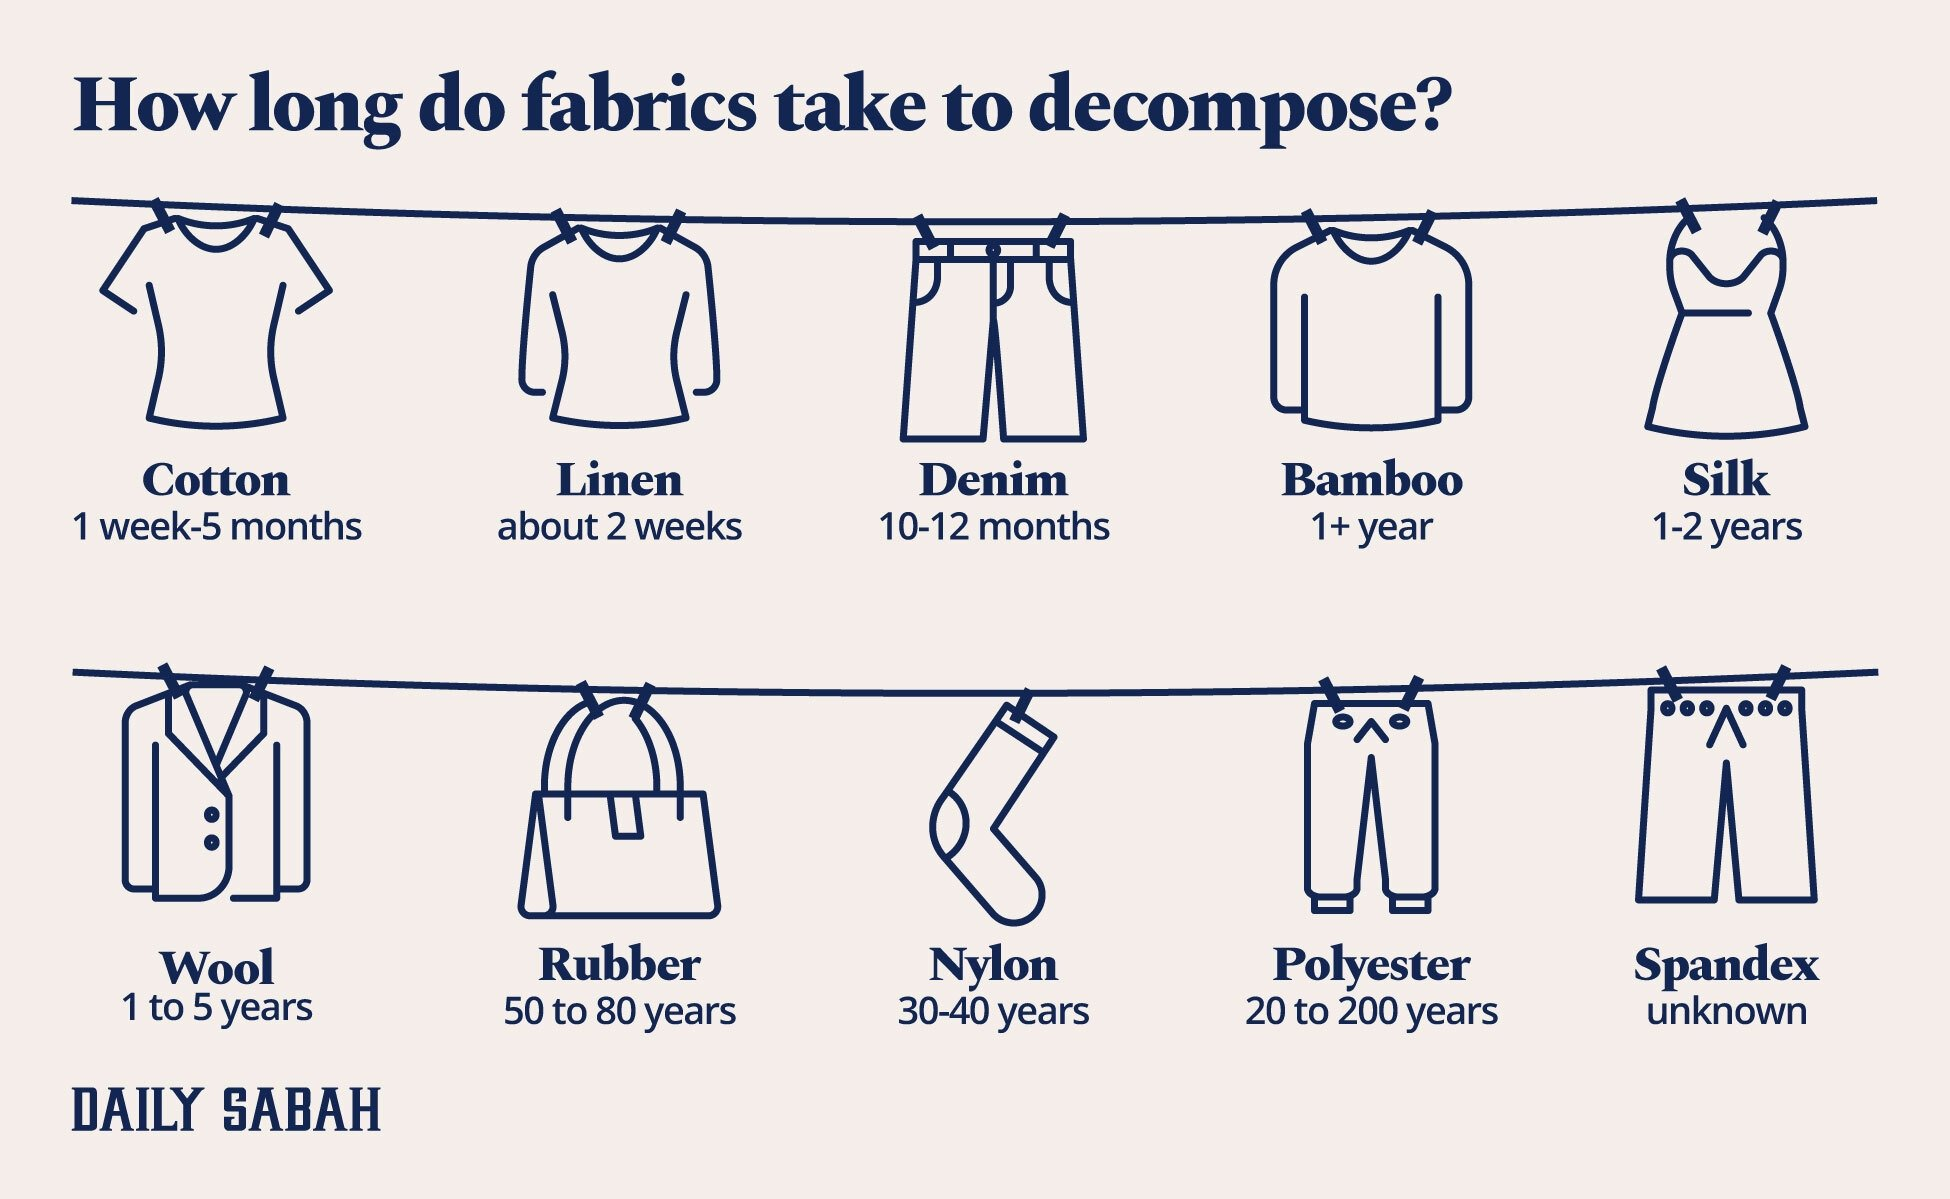 The average amount of time it takes for clothing to decompose in landfills. (Infographic by Daily Sabah)